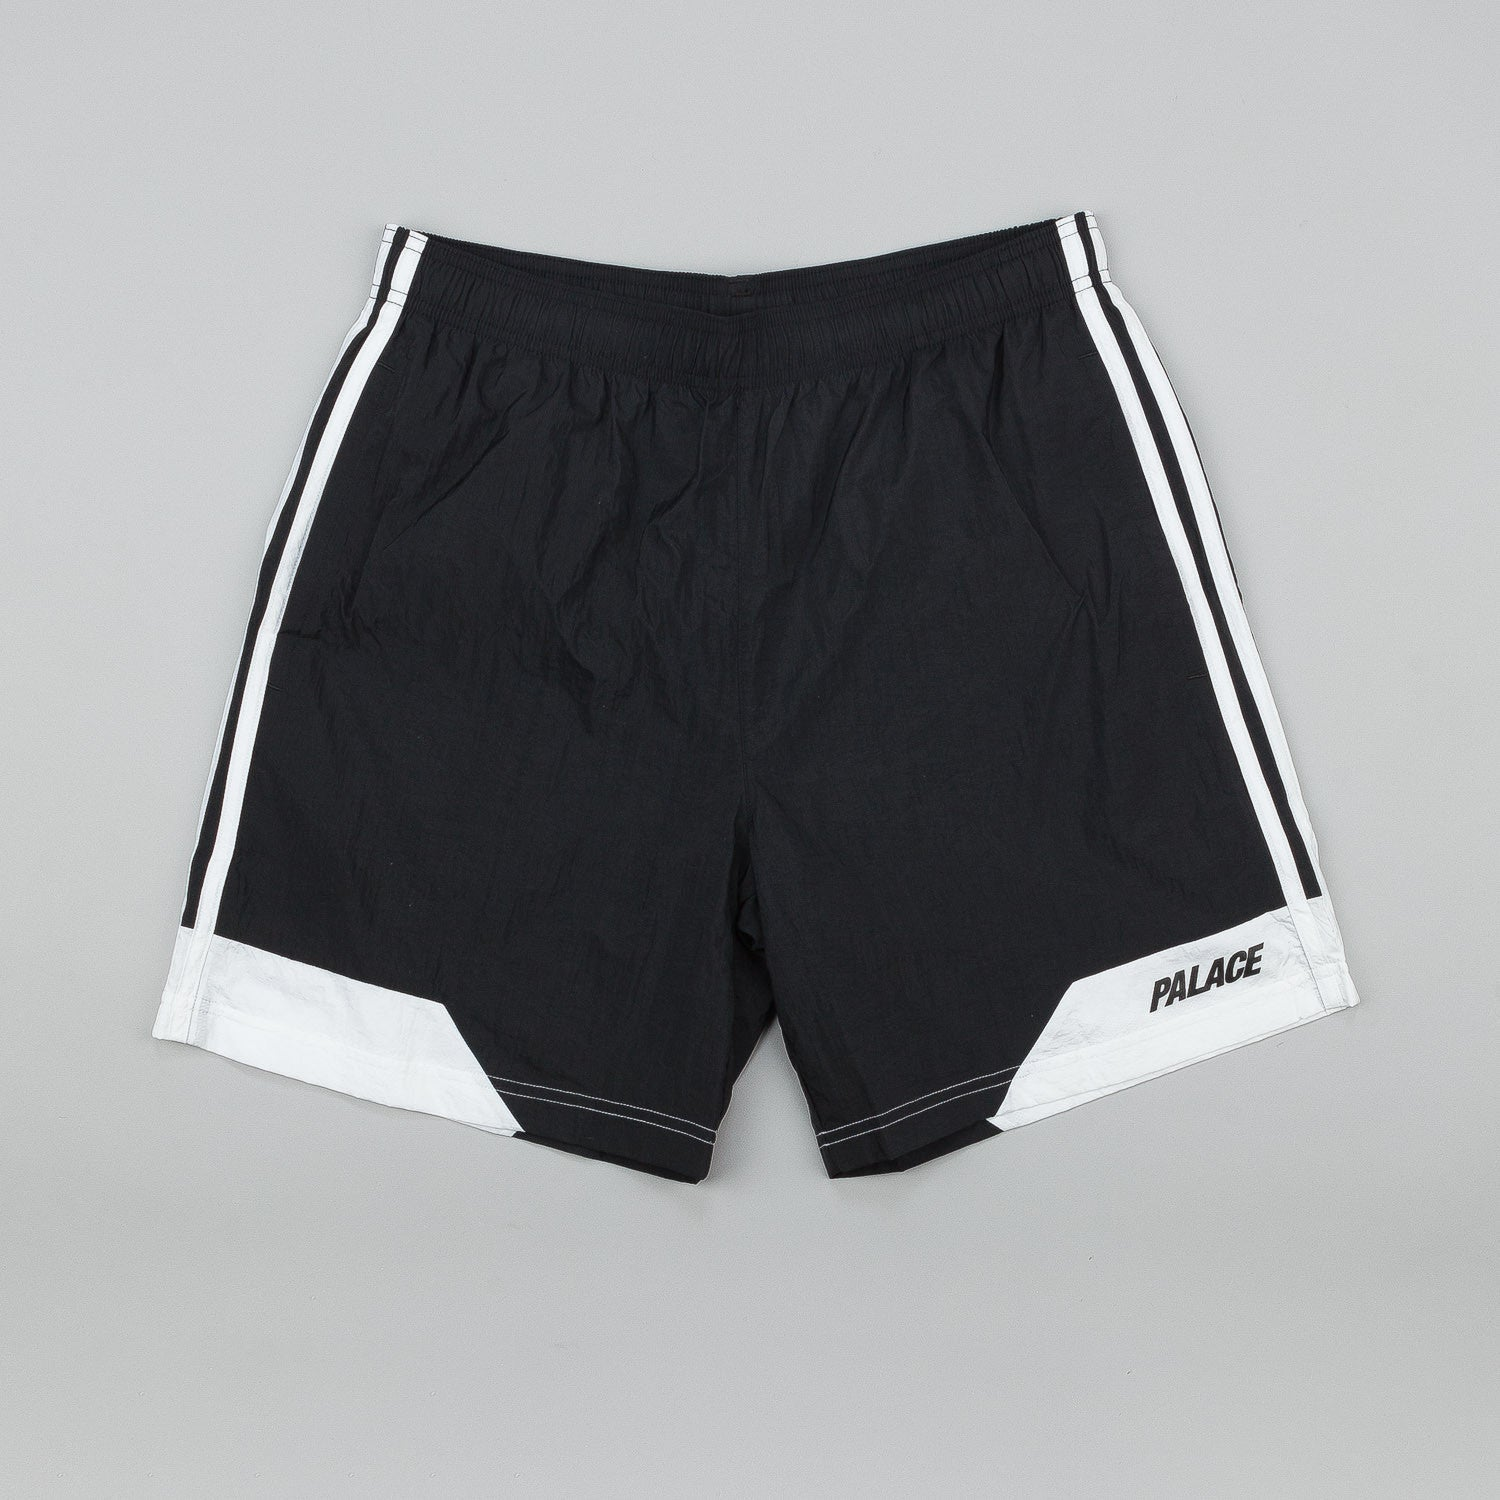 Adidas x Palace Shorts Black / White